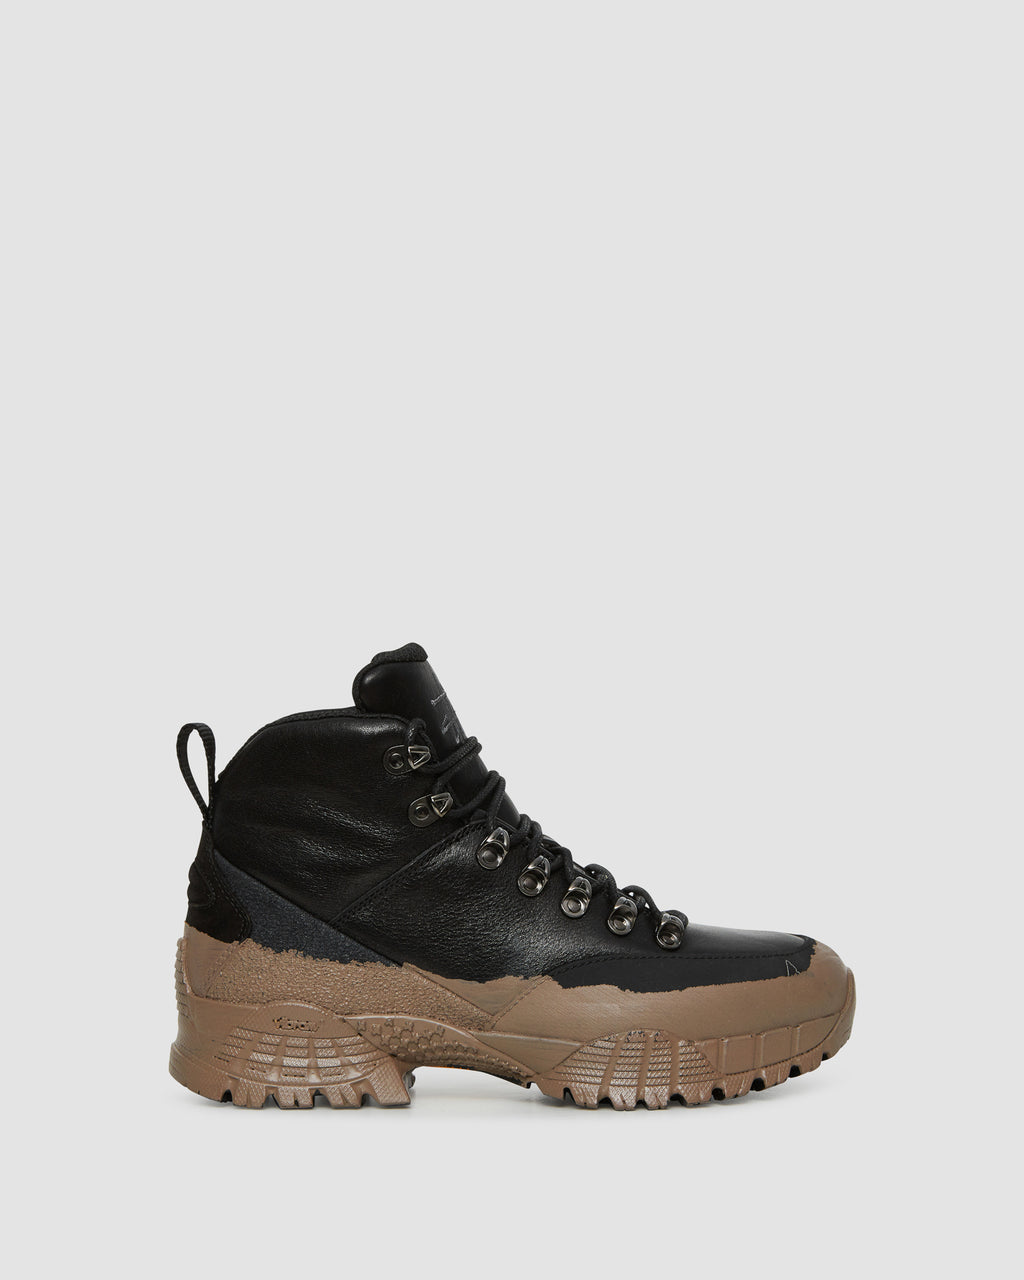 STUSSY HIKING BOOT